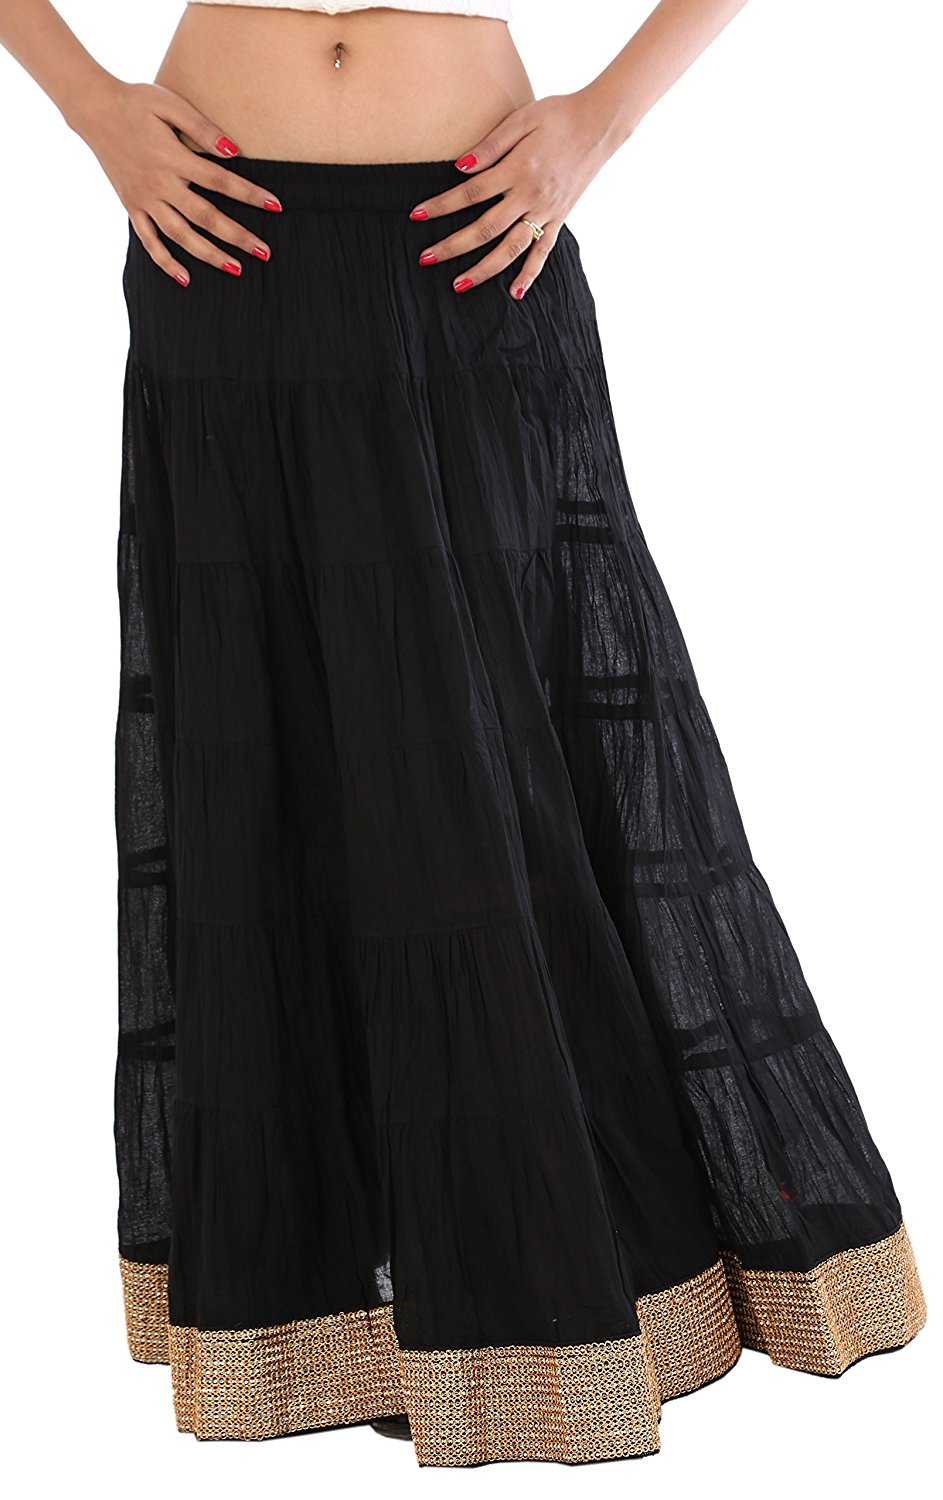 999ce694ad20 Skirts N Scarves Women's Long/Maxi Cotton Skirt with Golden Lace Border